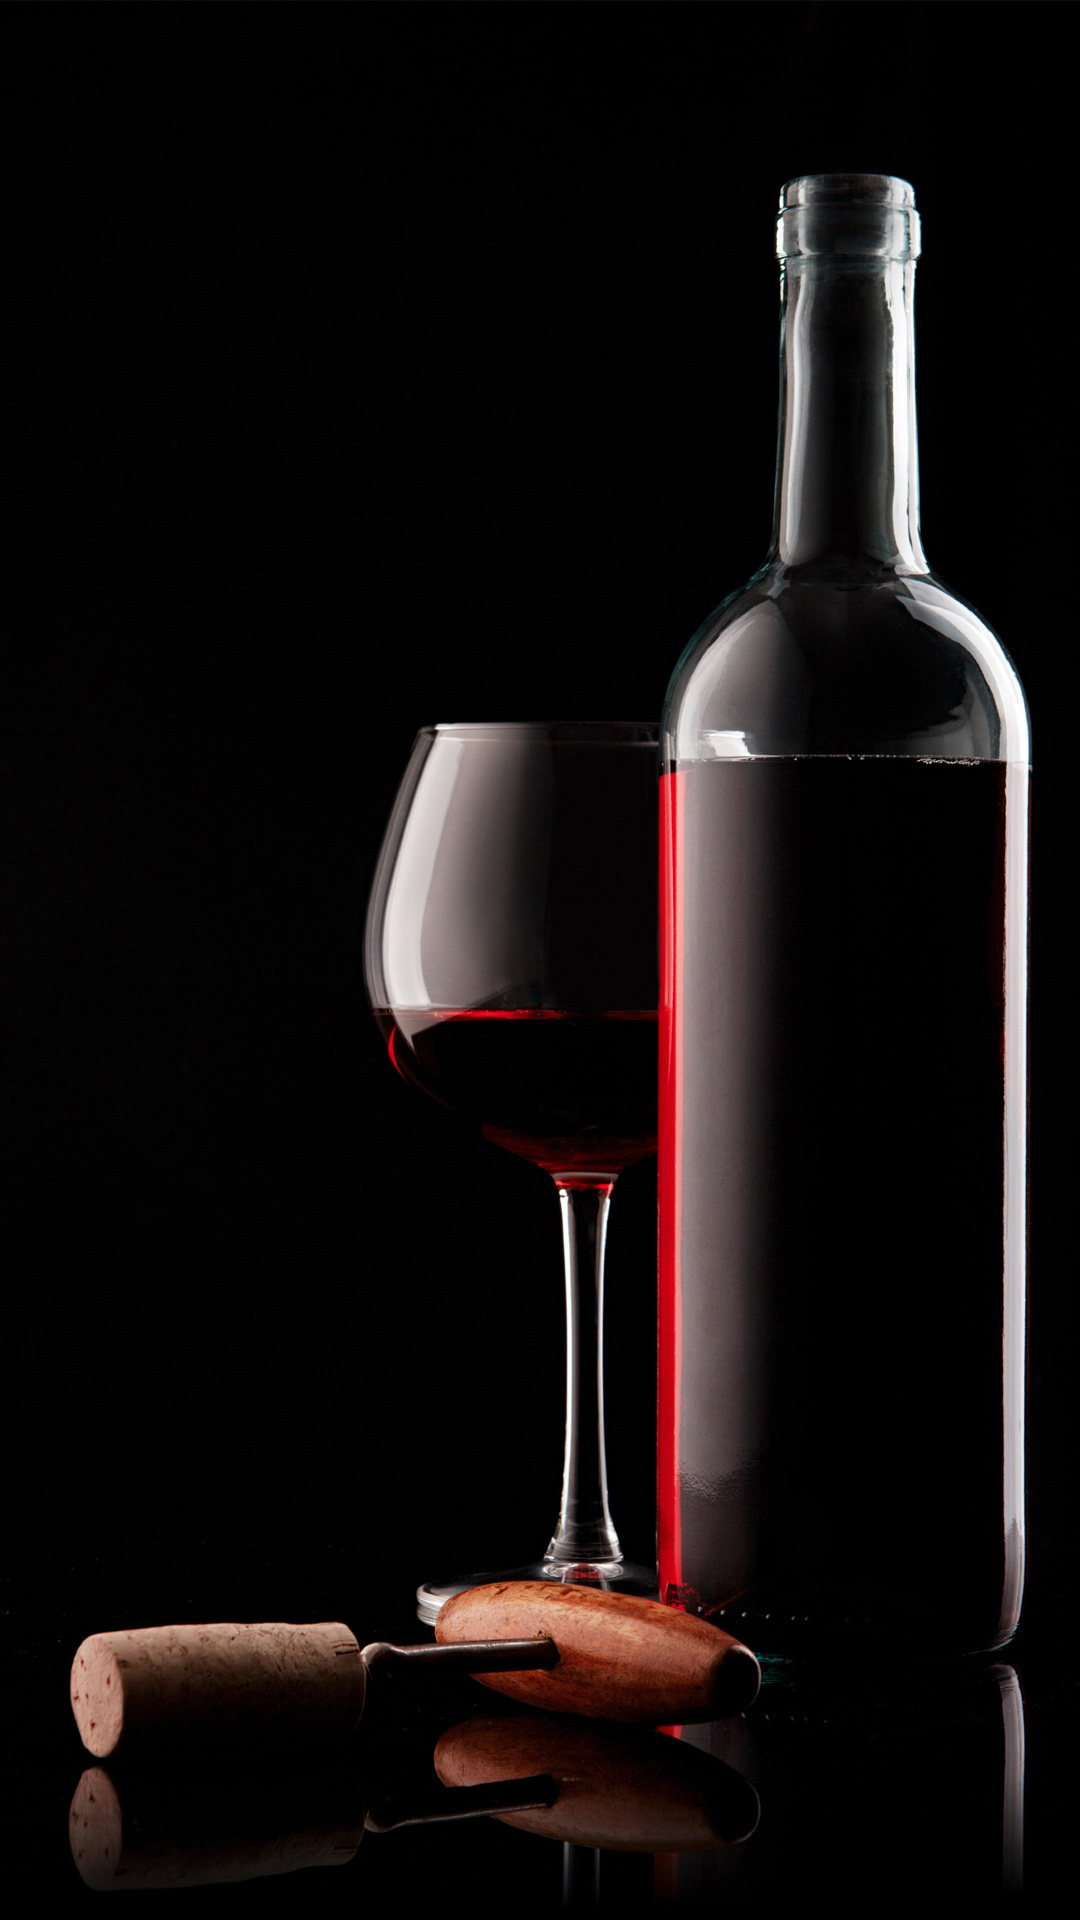 red-wine-glass-bottle-and-corkscrew-android-wallpaper